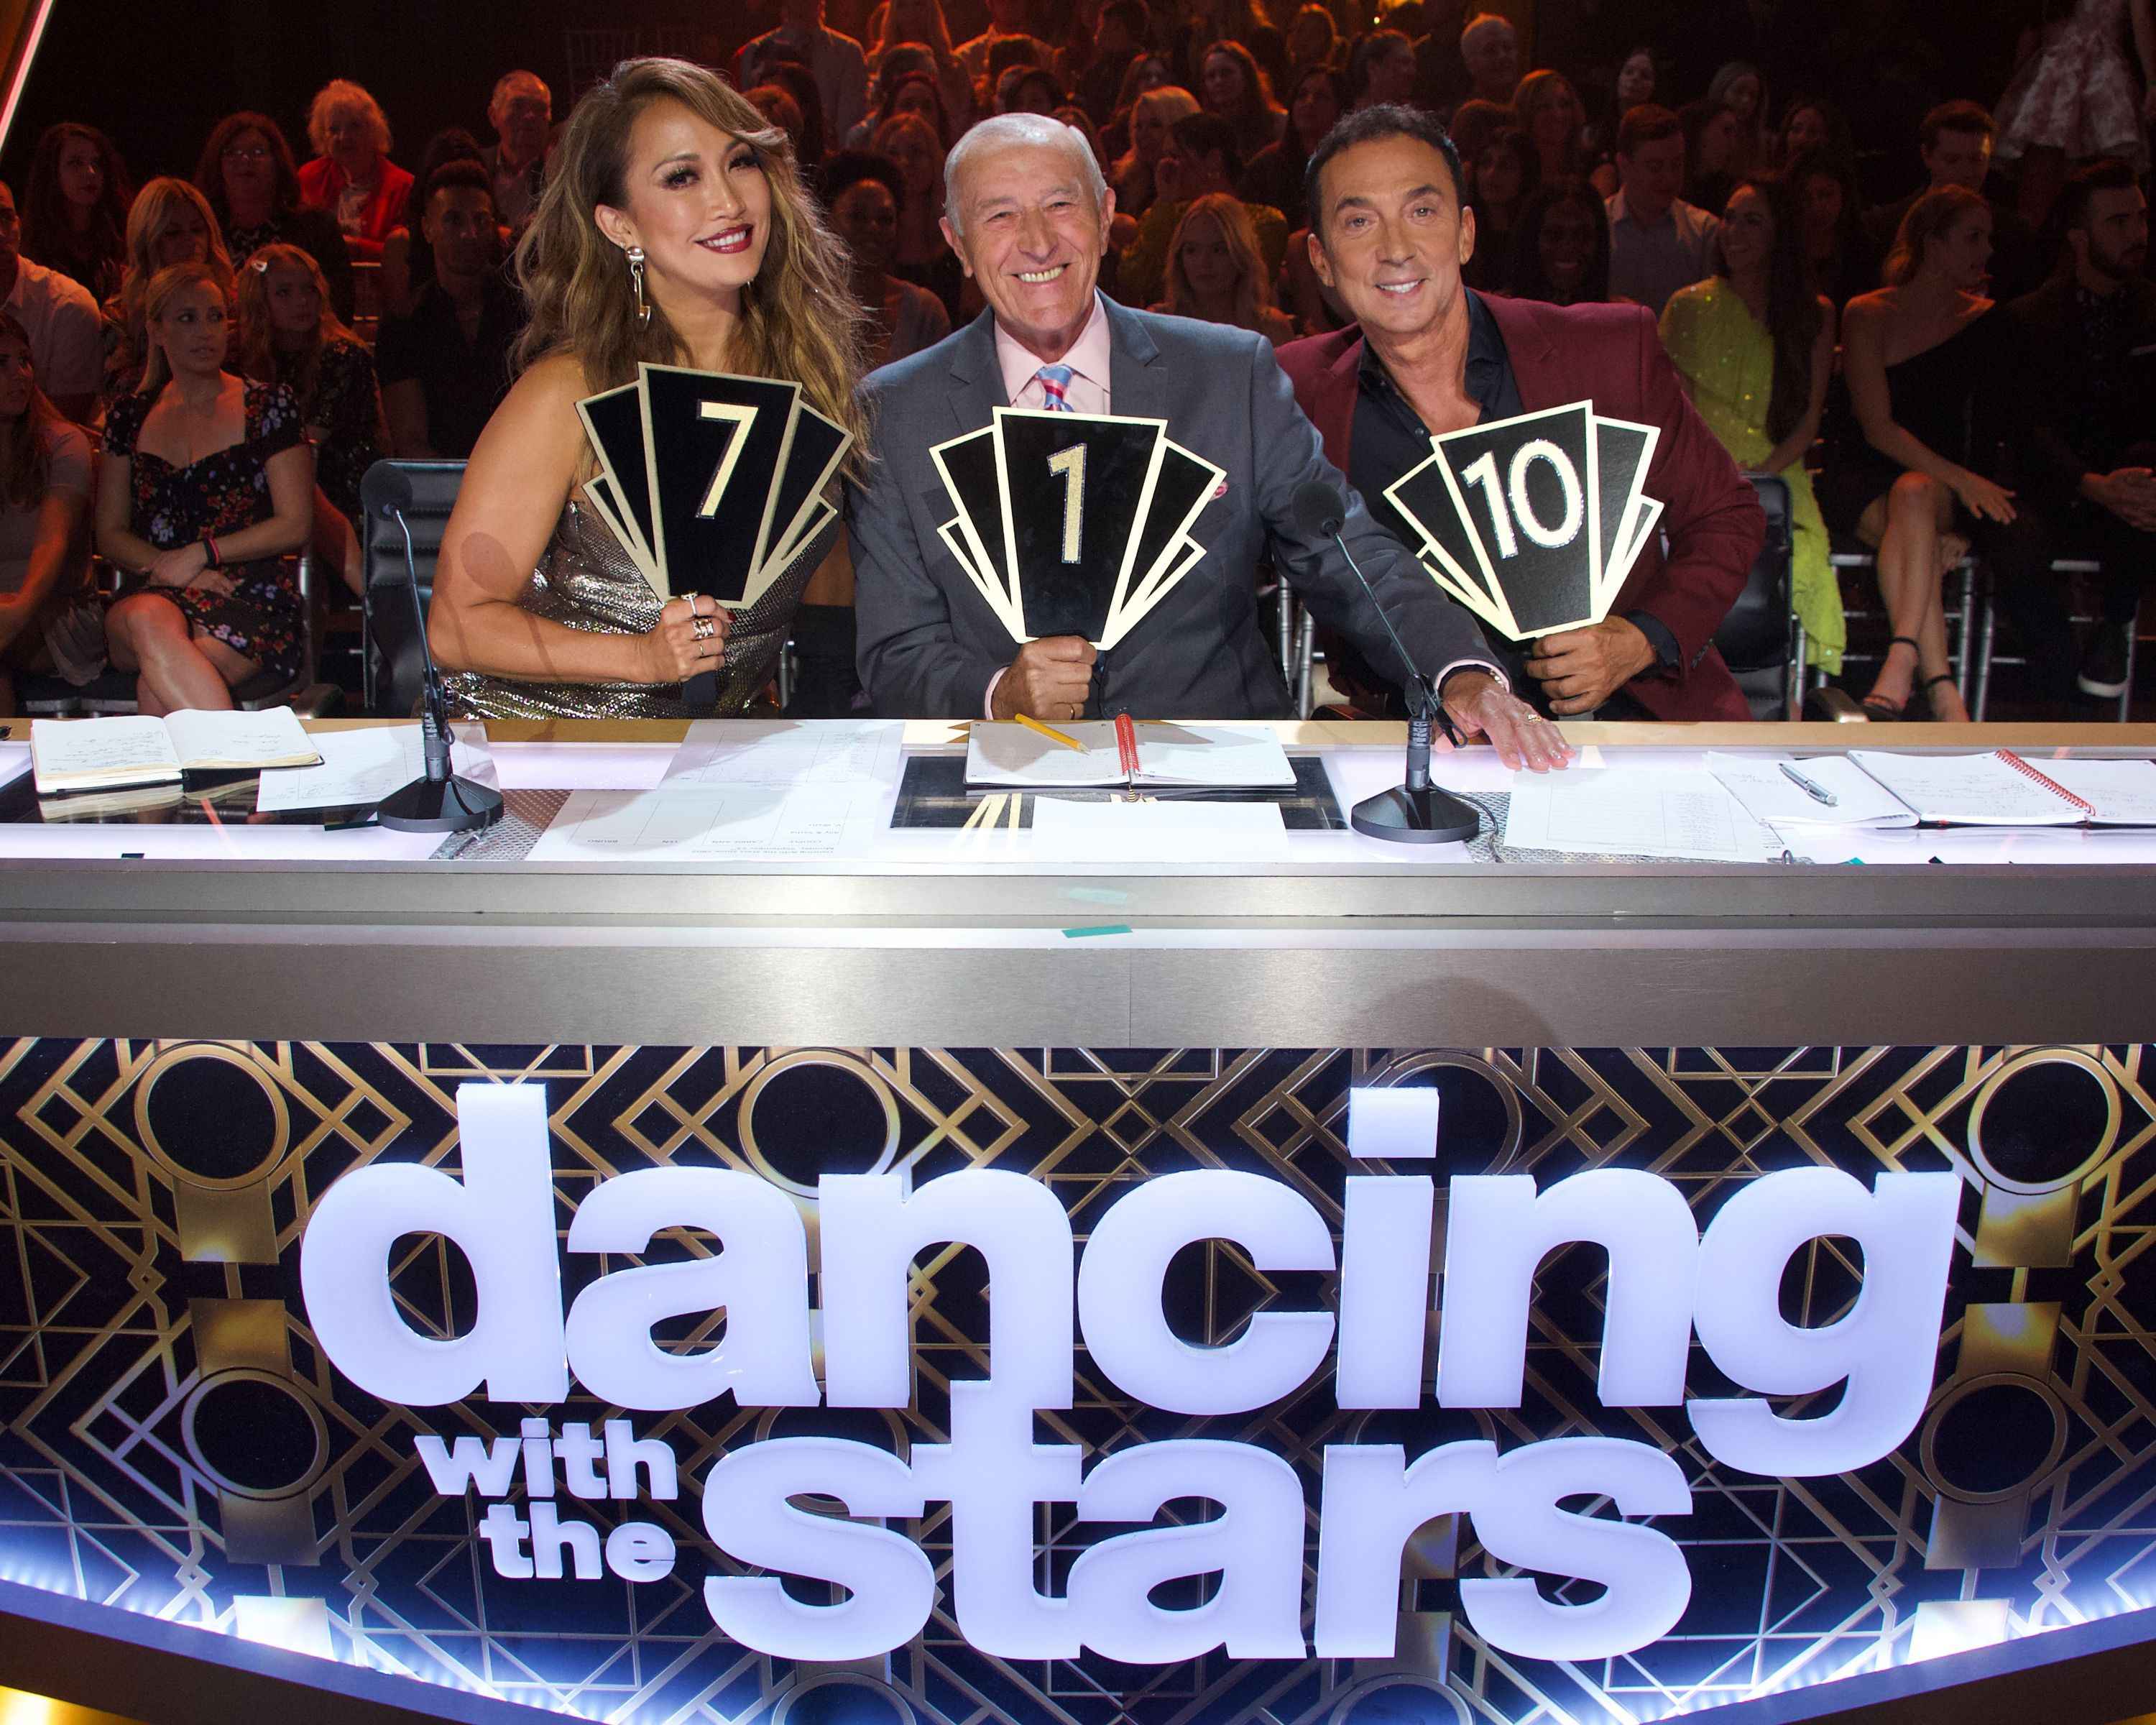 Do you win money on dancing with the stars won